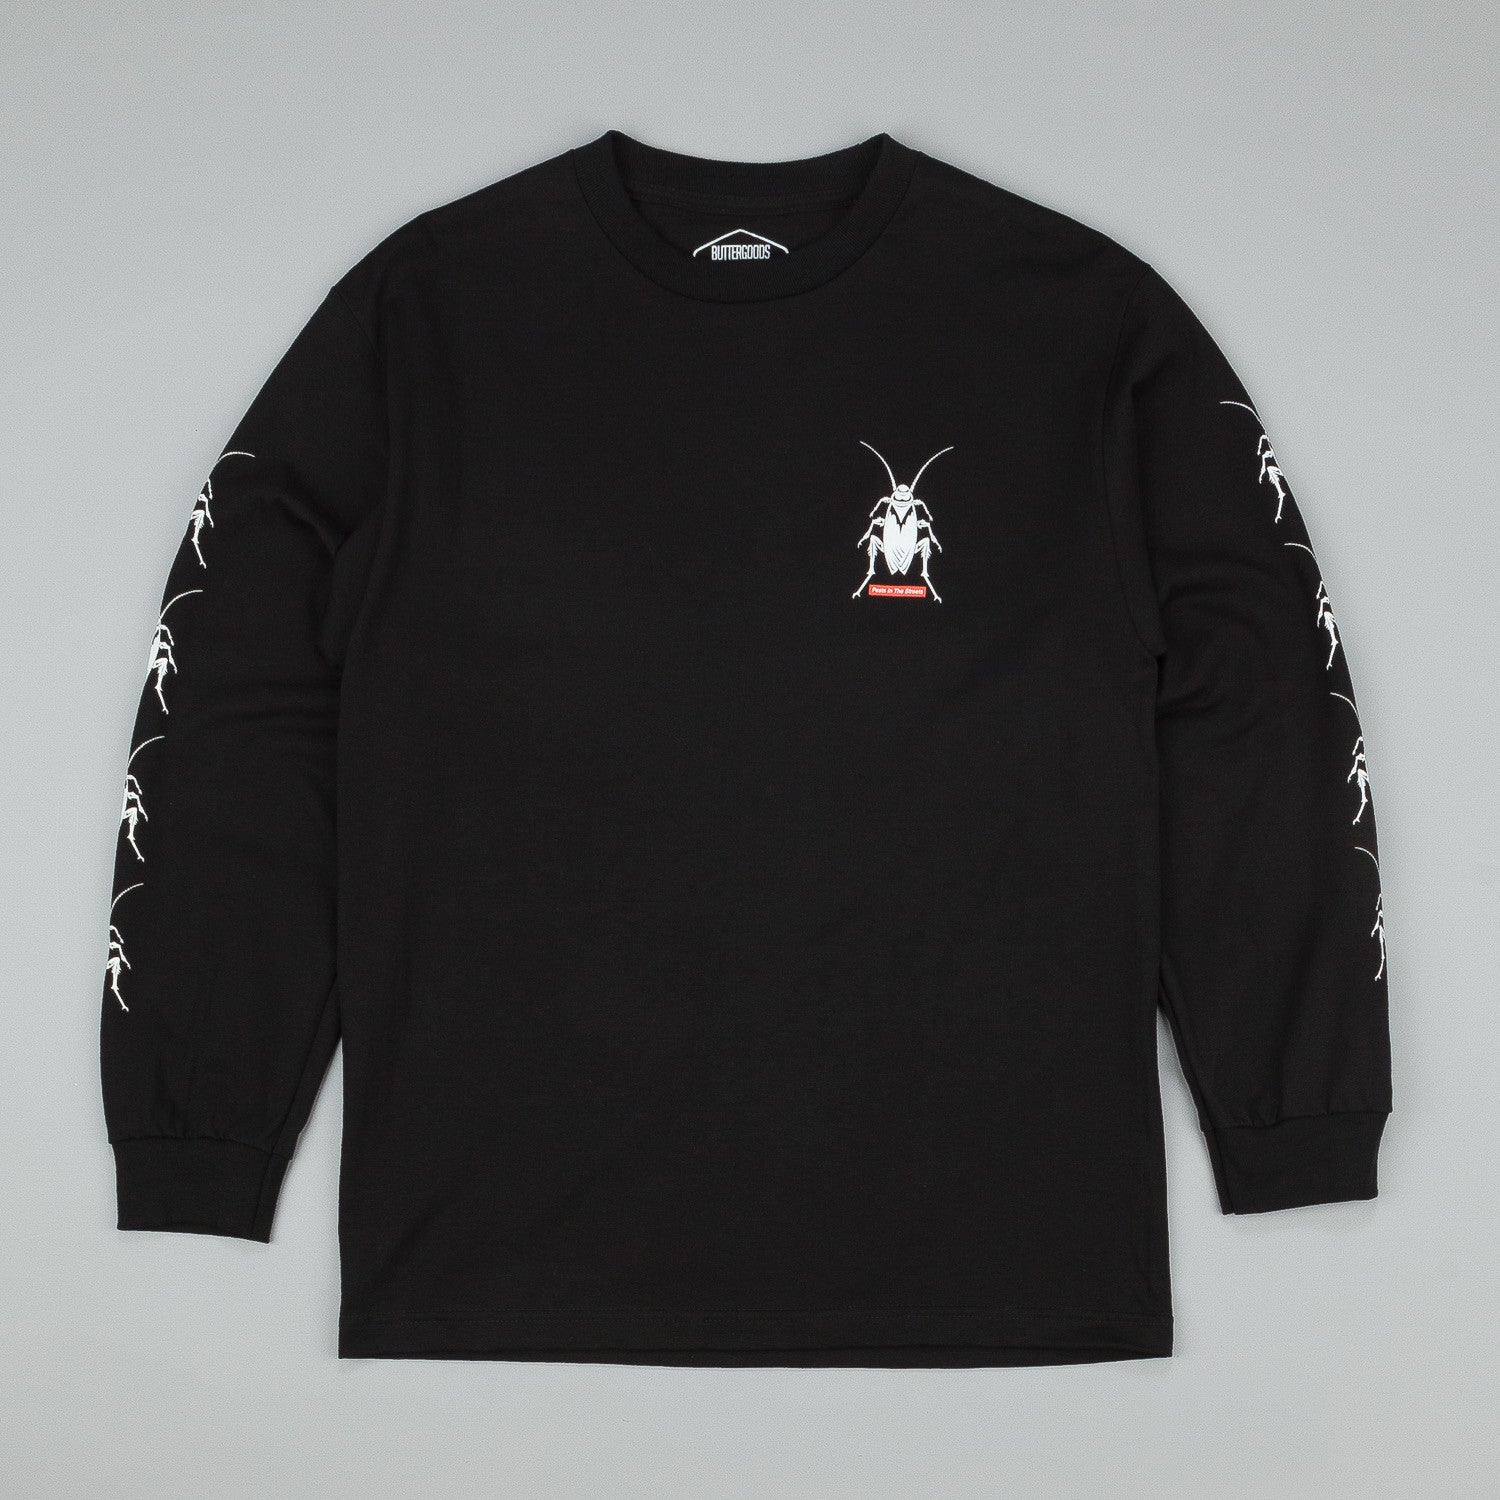 Butter Goods Roach Long Sleeve T-Shirt - Black